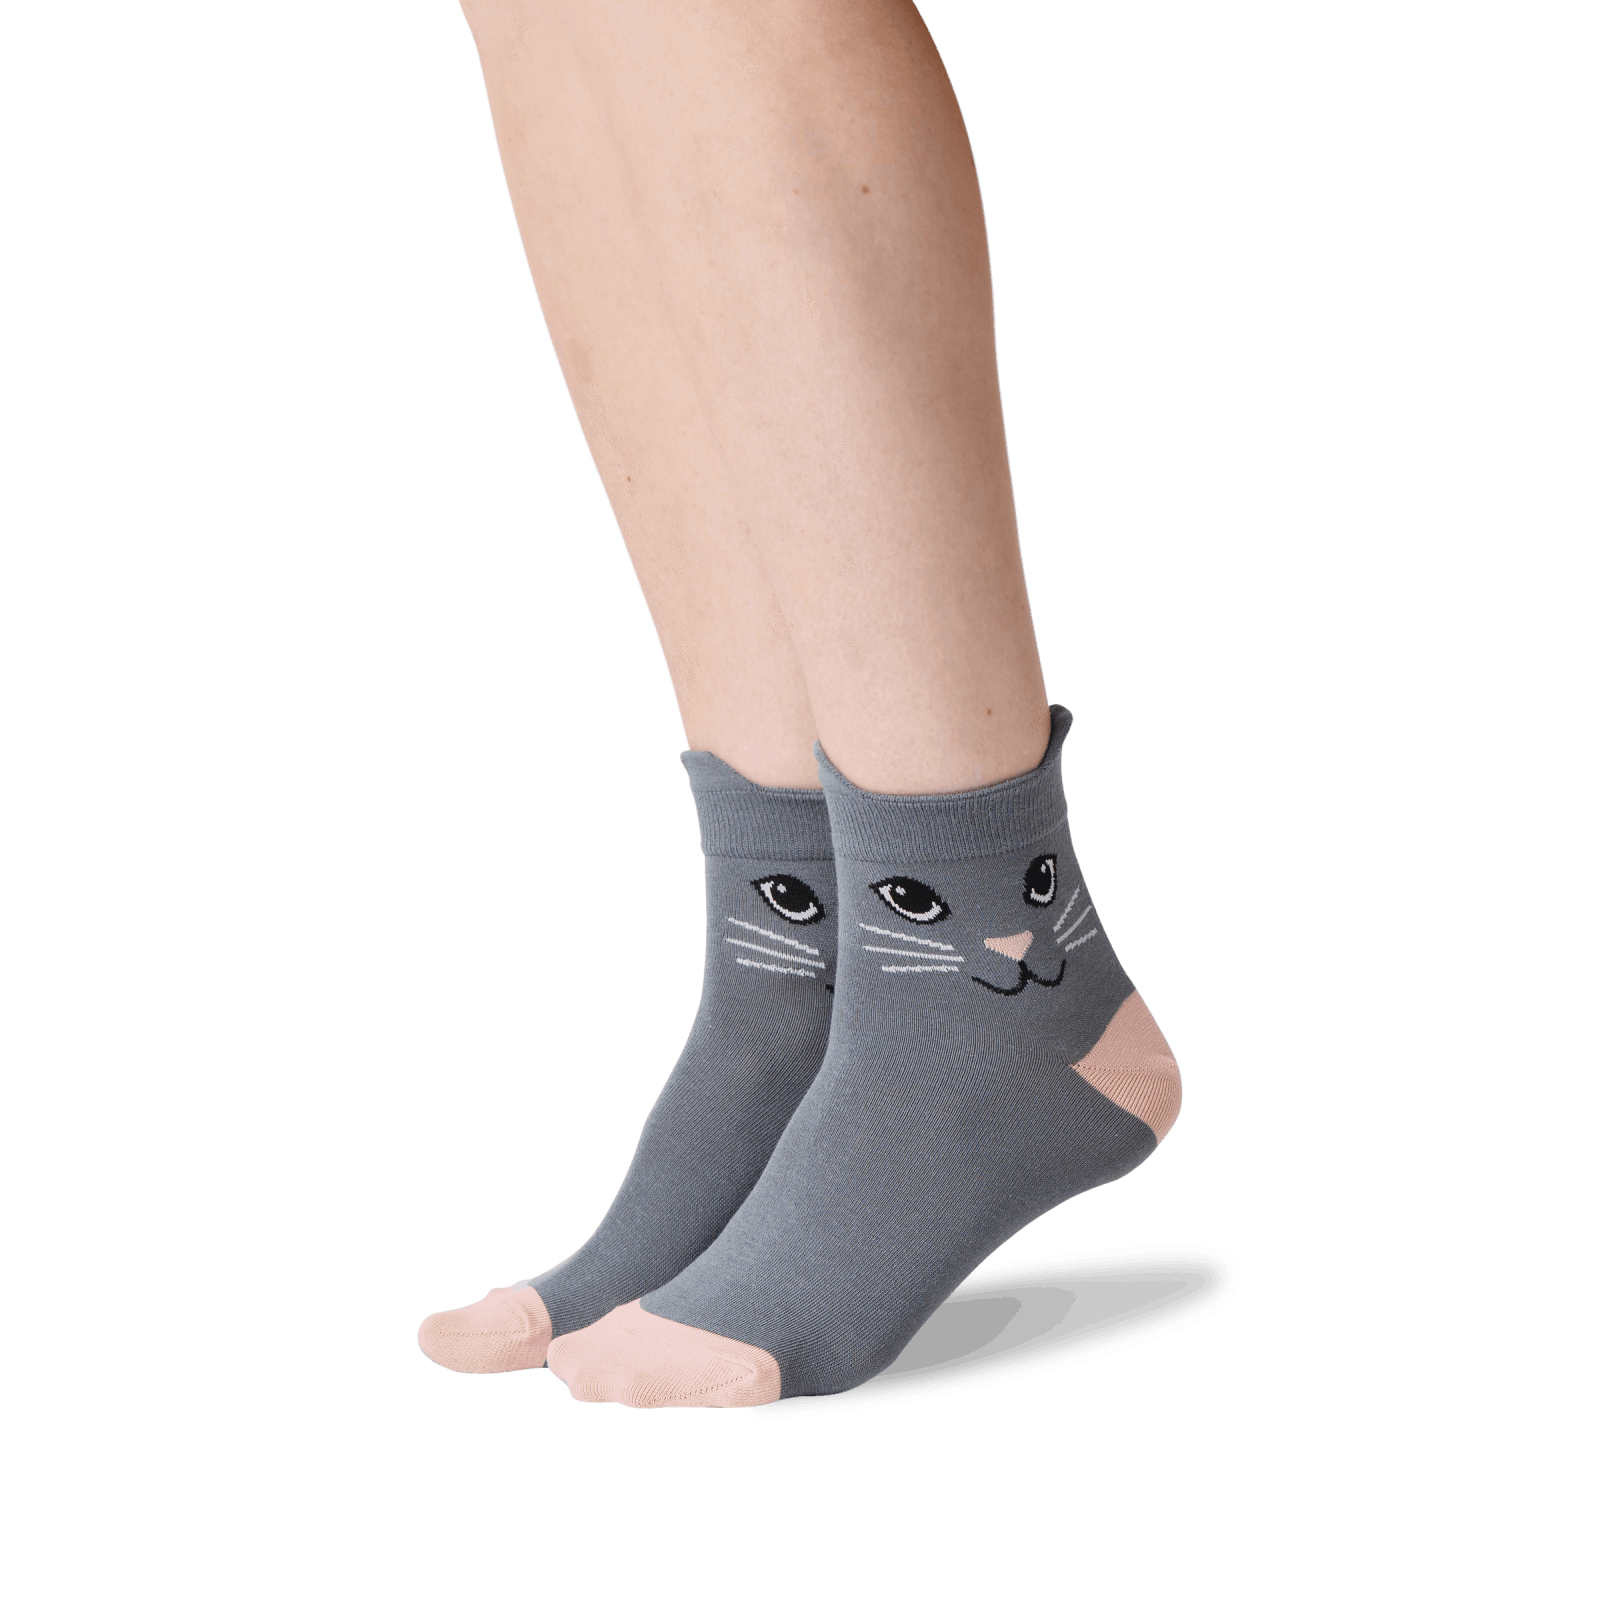 Women's Cat Ears Anklet Socks